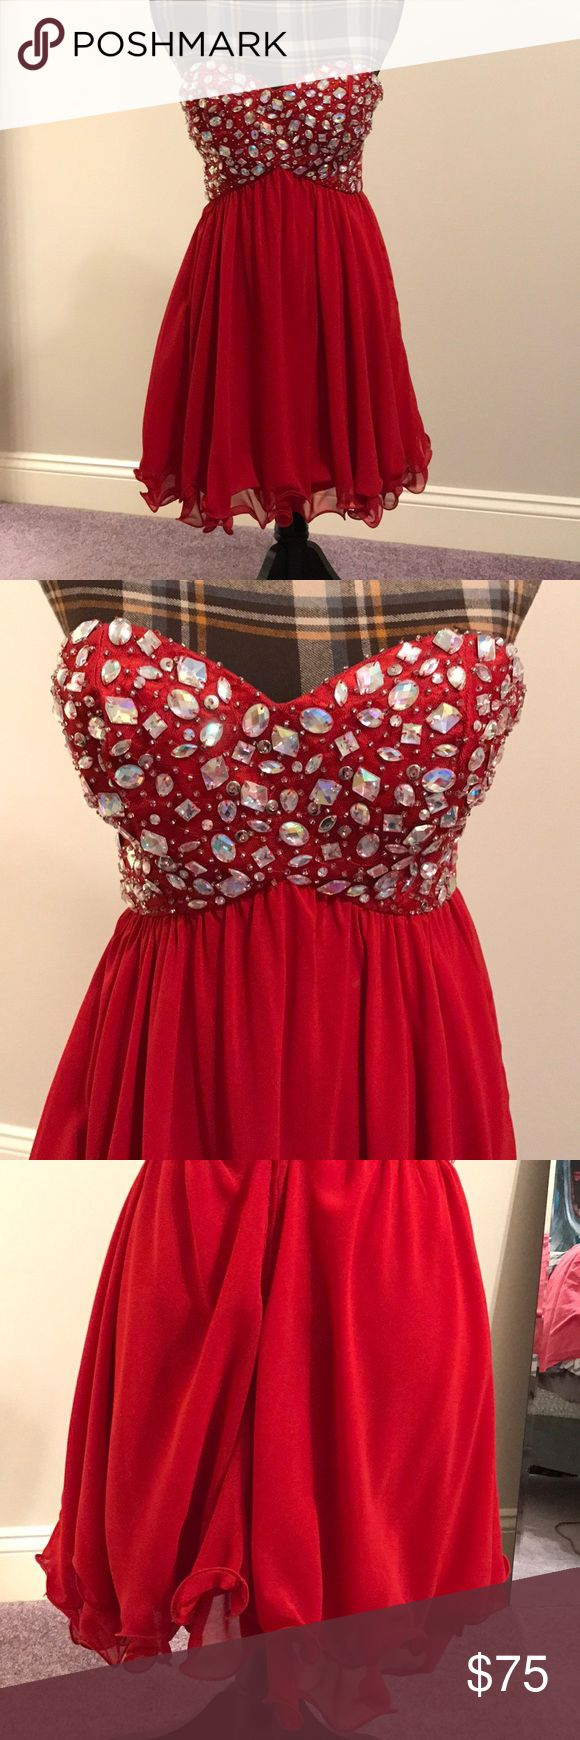 Dress This shirt red dress includes silver embellishments on the bodice we well as a lining on the inside. It is a size 3 but that is also very similar to a size 2 US. B. Smart Dresses Mini